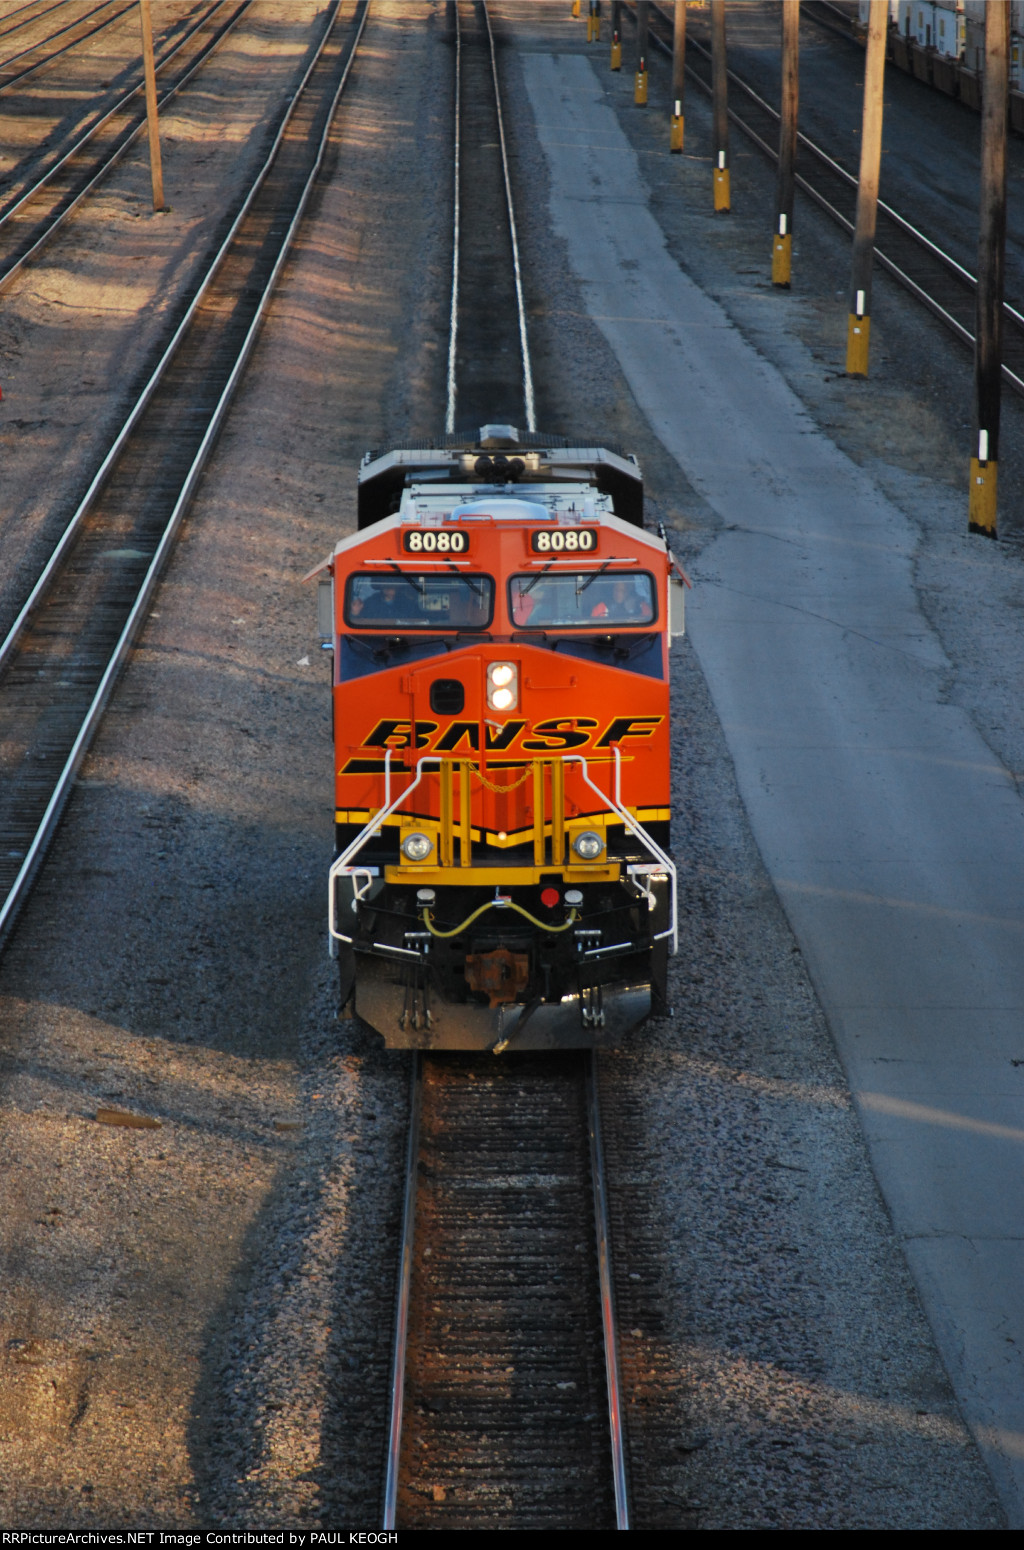 BNSF 8080 heads down Main Track #3 on Her way to be a add on Locomotive to a east or west Z or Stack Train.